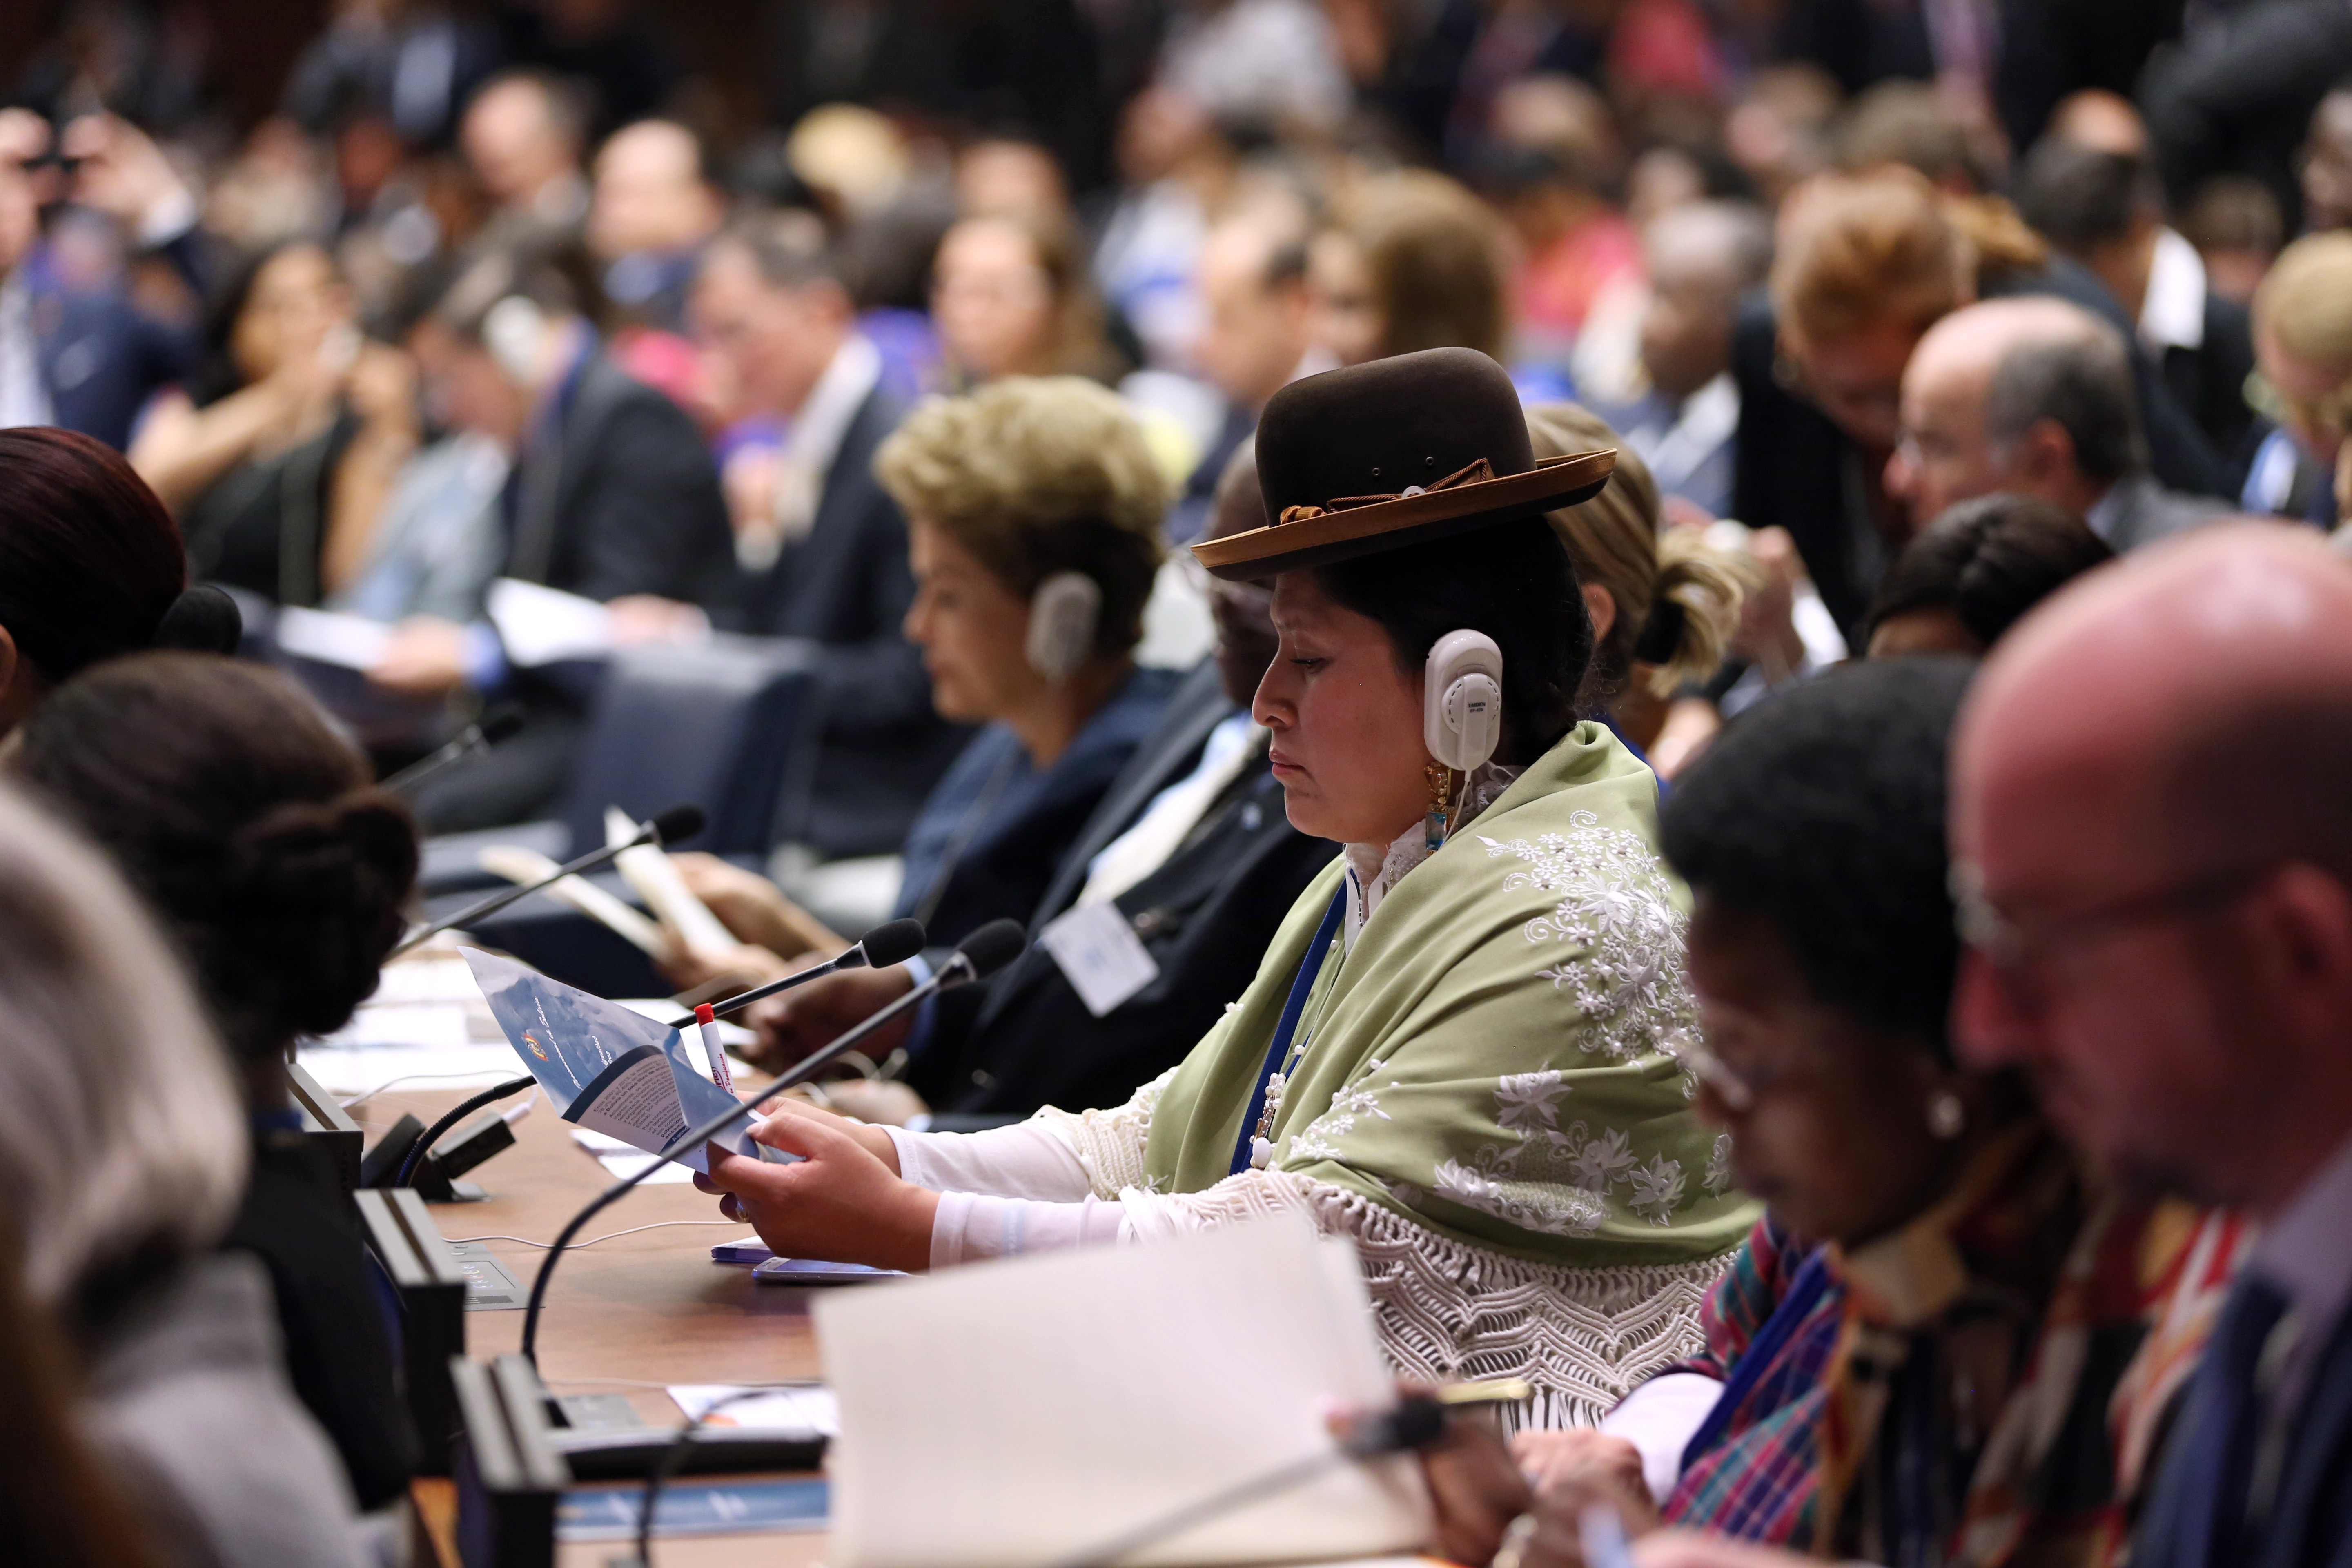 """During the 70th session of the General Assembly world leaders convened for the """"Global Leaders' Meeting on Gender Equality and Women's Empowerment: A Commitment to Action,"""" hosted by UN Women, to personally commit to ending discrimination against women by 2030 and announce concrete and measurable actions to kickstart rapid change in their countries Photo: UN Women/Ryan Brown"""